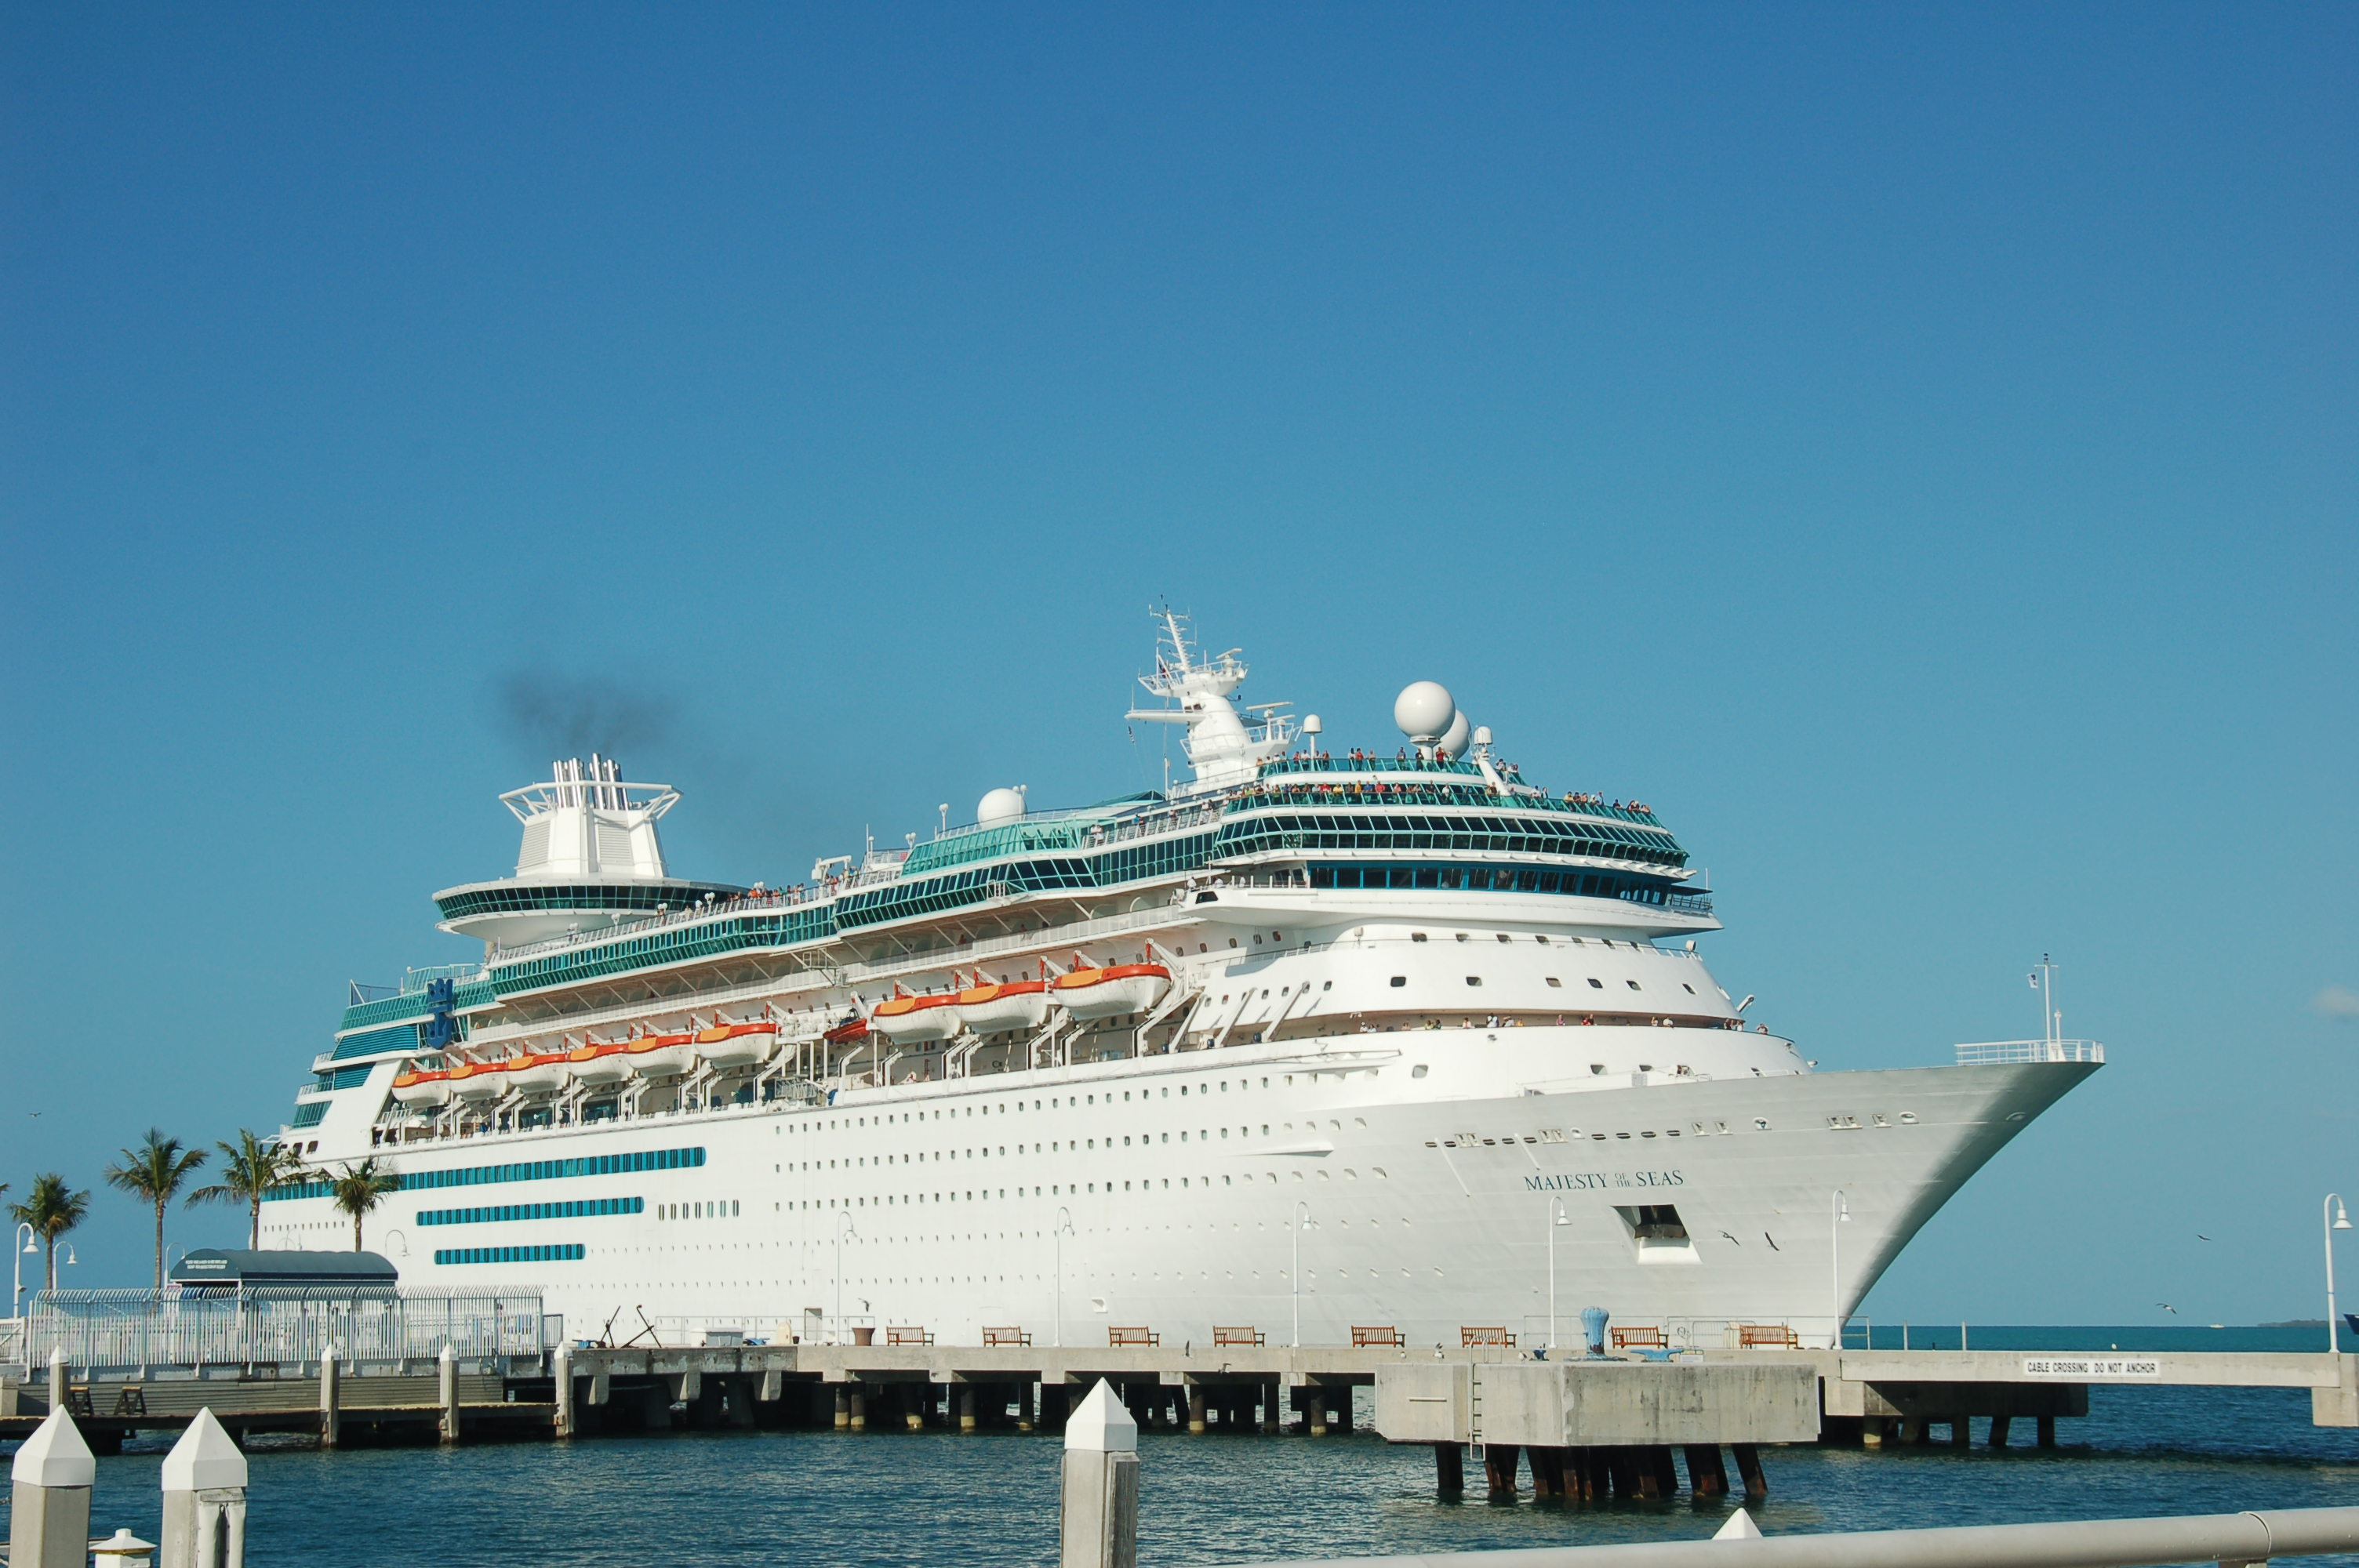 Cruise Liner Majesty Of The Seas